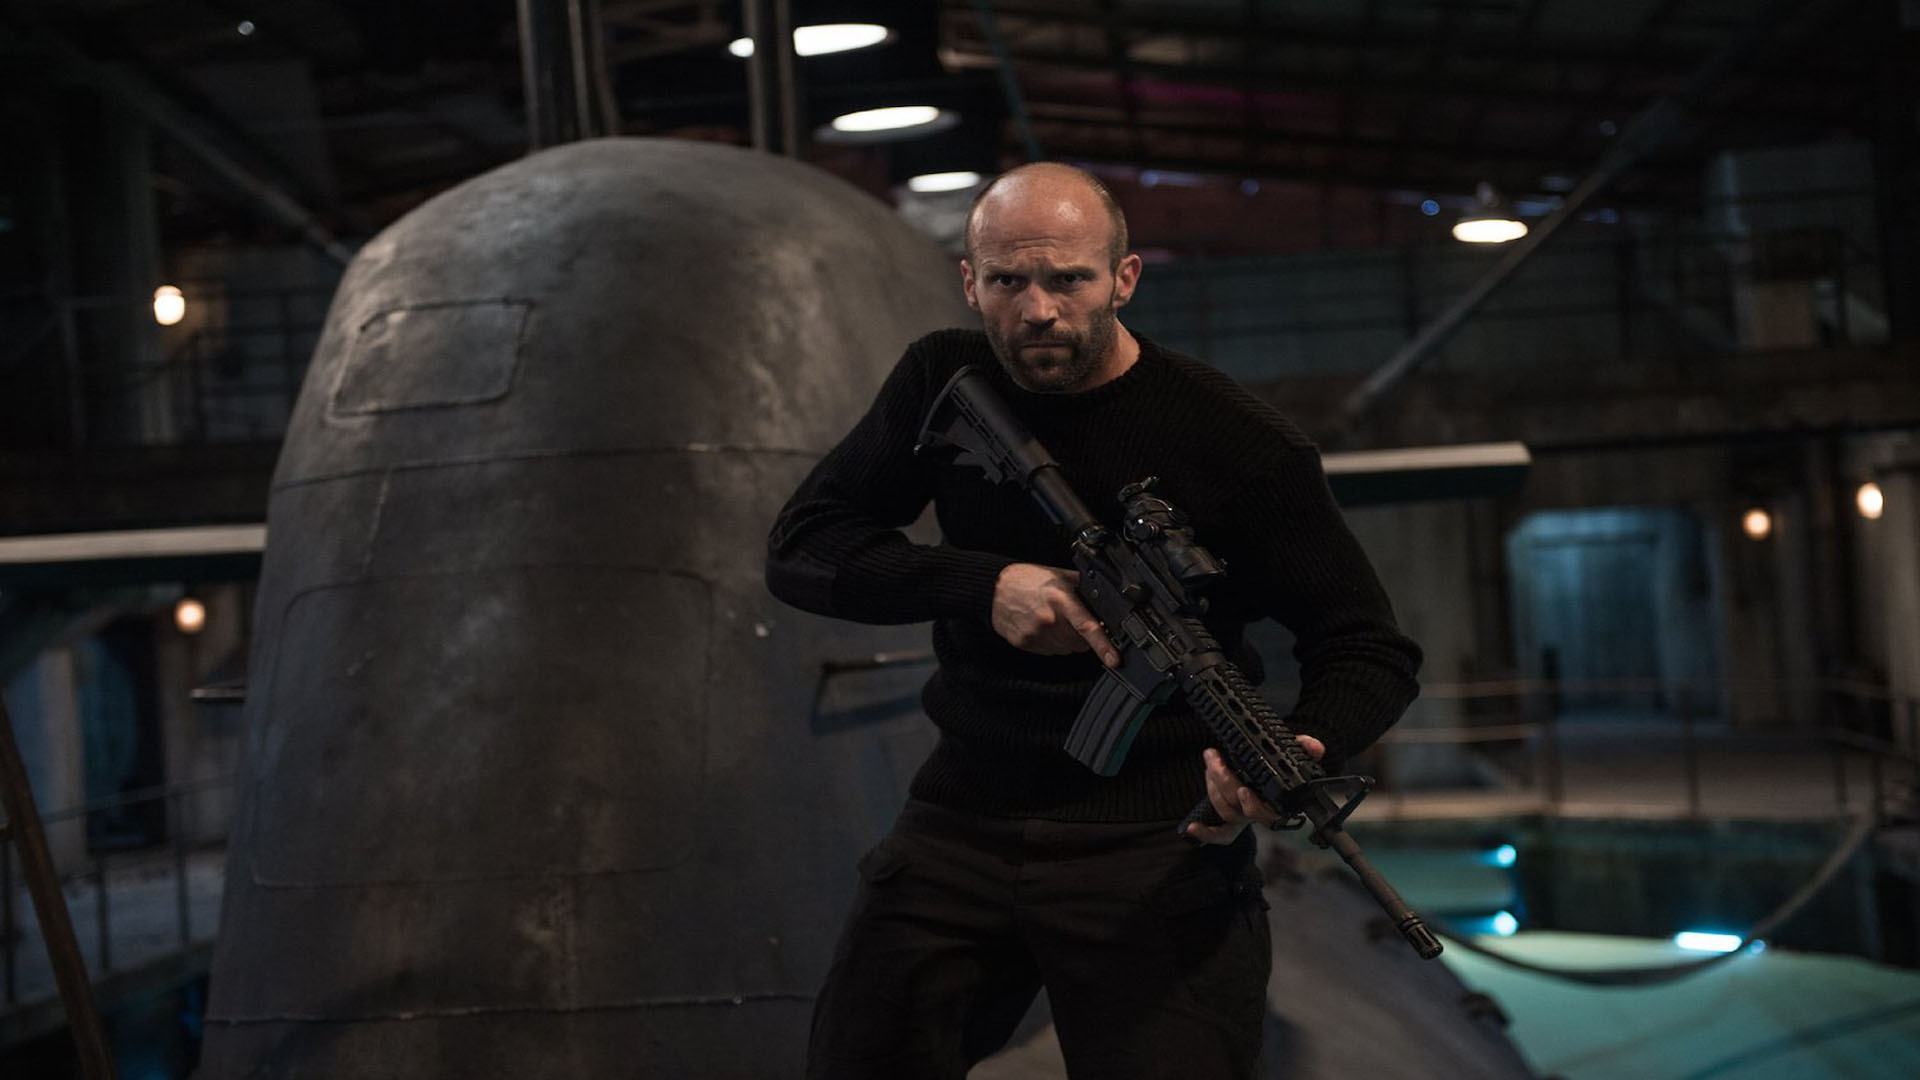 Mechanic Resurrection Wallpapers Images Photos Pictures HD Wallpapers Download Free Images Wallpaper [1000image.com]